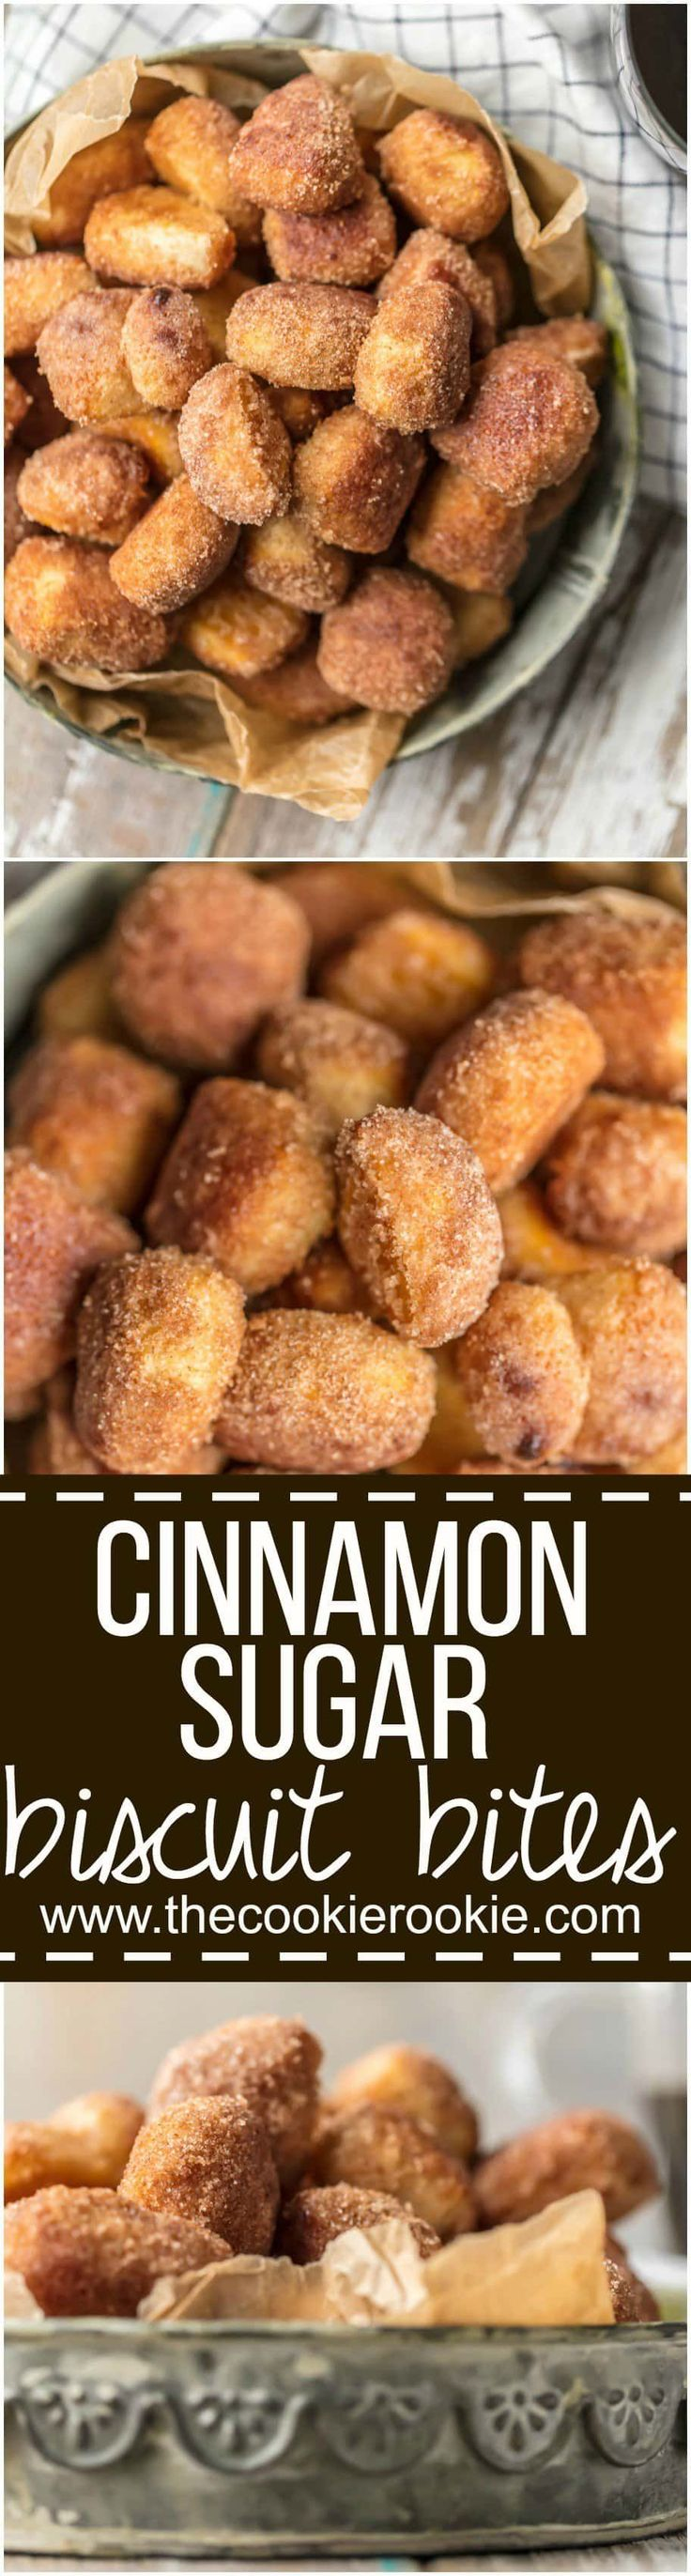 These CRISPY CINNAMON SUGAR BISCUIT BITES are the perfect breakfast, dessert, or snack for any time of day! Easy, delicious, and so fun. Making a homemade treat just doesn't get simpler than these tasty bites! via @beckygallhardin